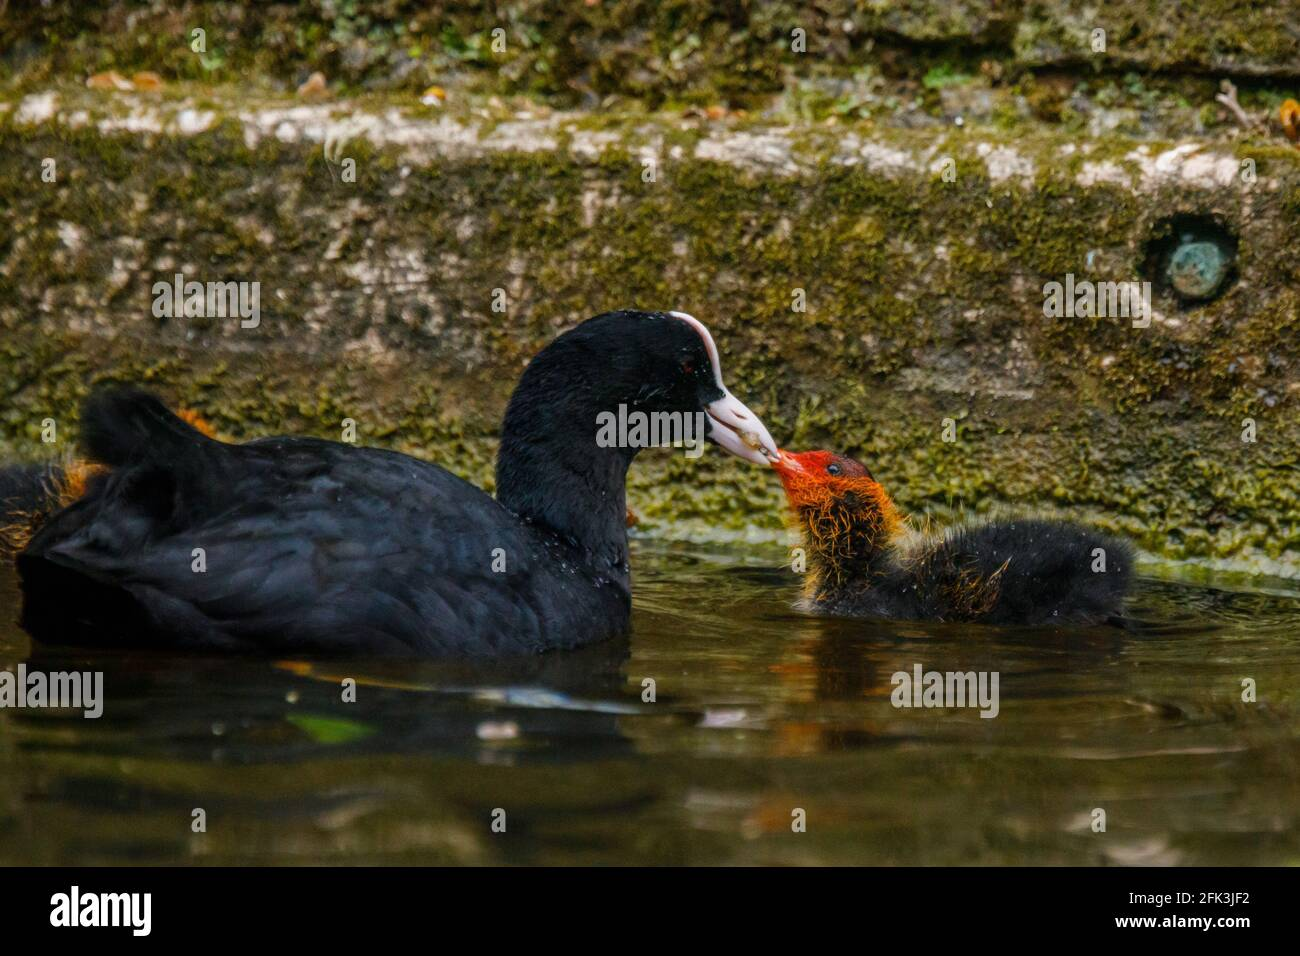 Wapping Canal, London, UK. 28th April 2021. Coot feeding it's baby cootie on an urban canal in Wapping, East London.  Amanda Rose/Alamy Stock Photo